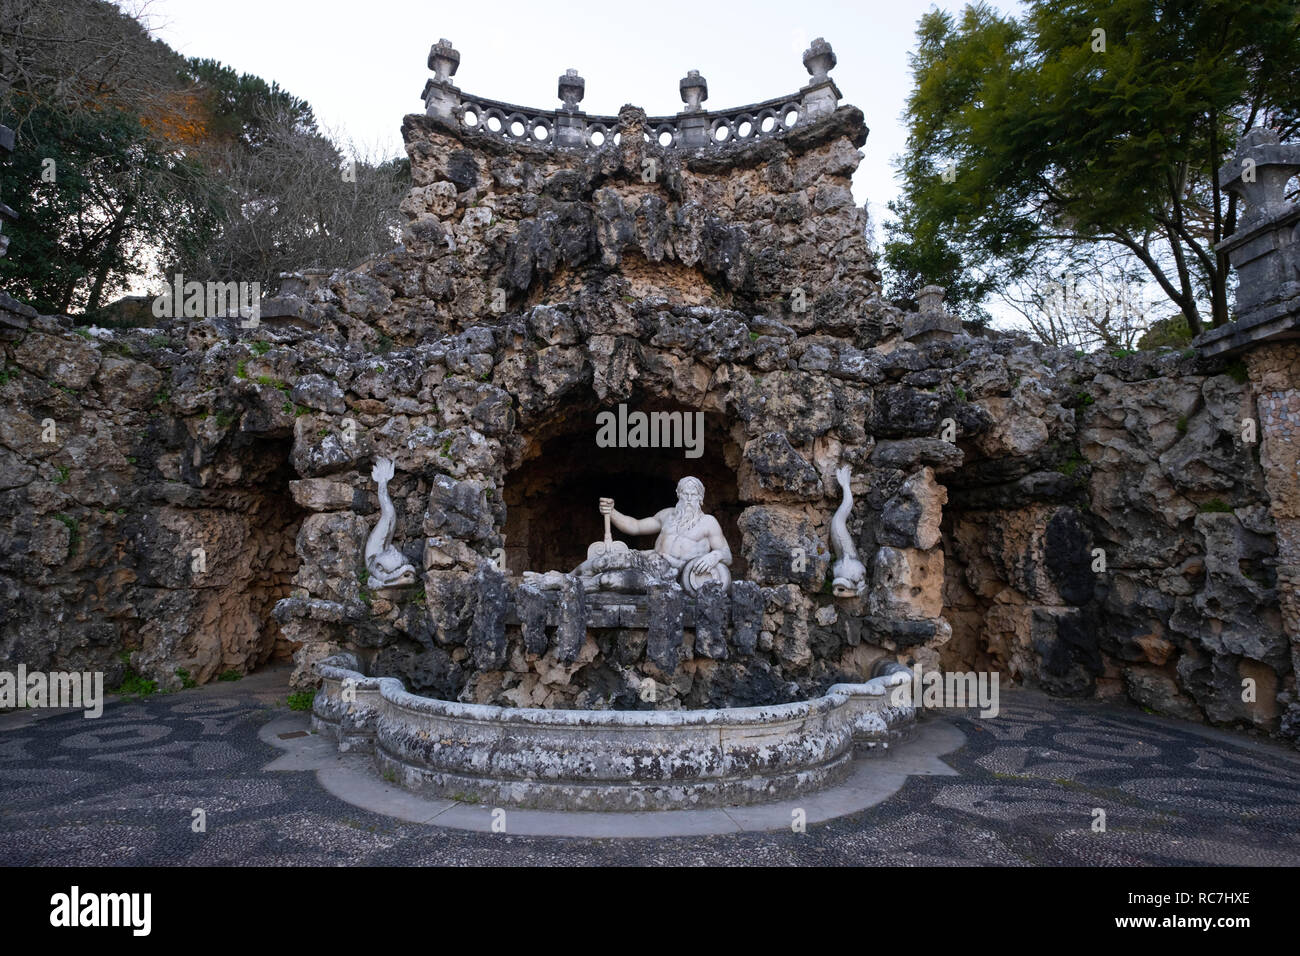 Cascata dos Poetas - poets fountain with a statue of the god of the seas Poseidon at the Marques de Pombal Palace in Oeiras, Portugal, Europe - Stock Image